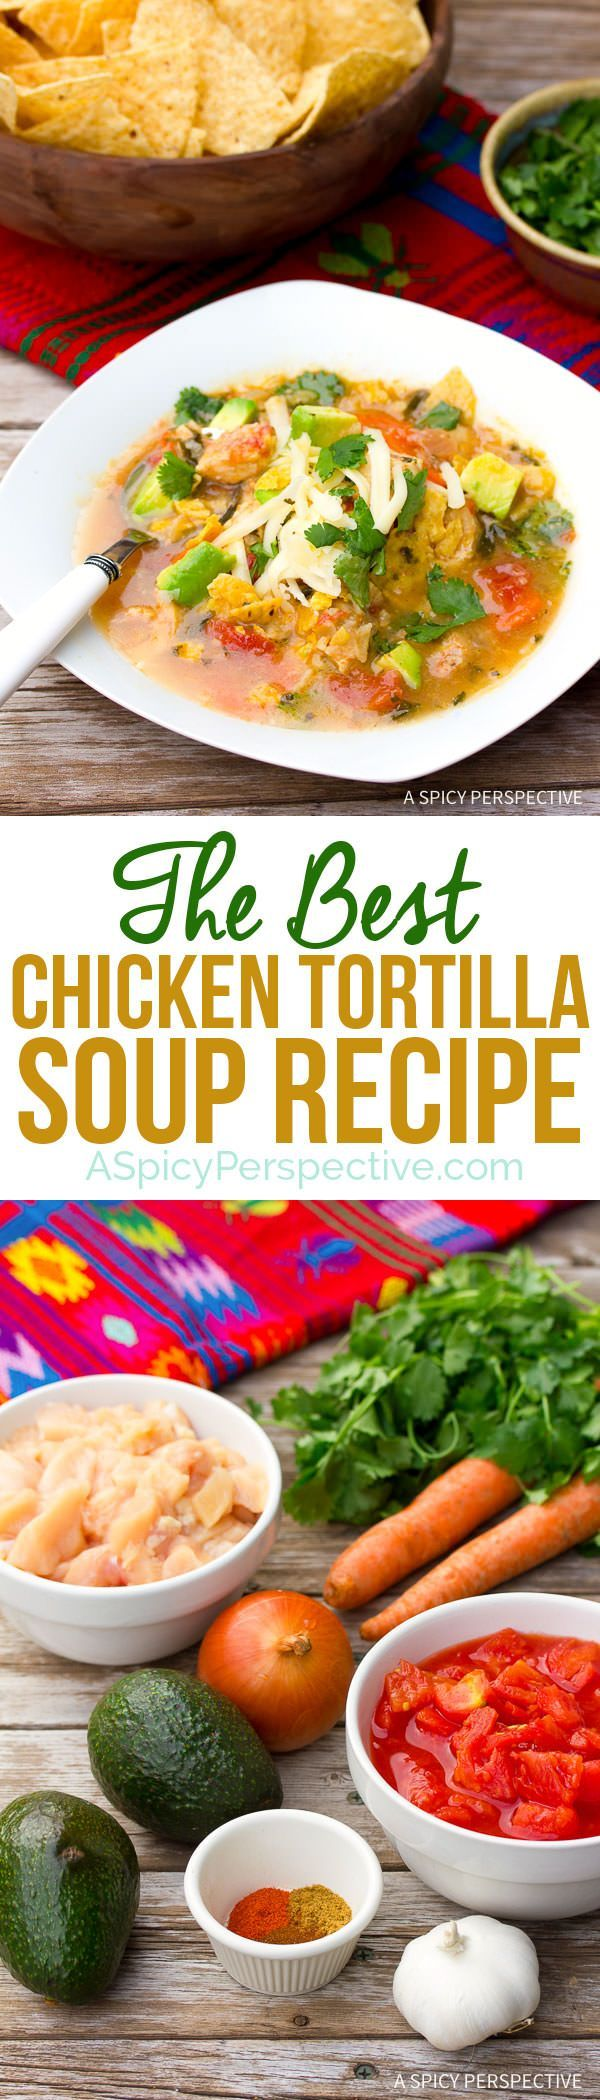 The Best Ever Chicken Tortilla Soup Recipe on http://ASpicyPerspective.com